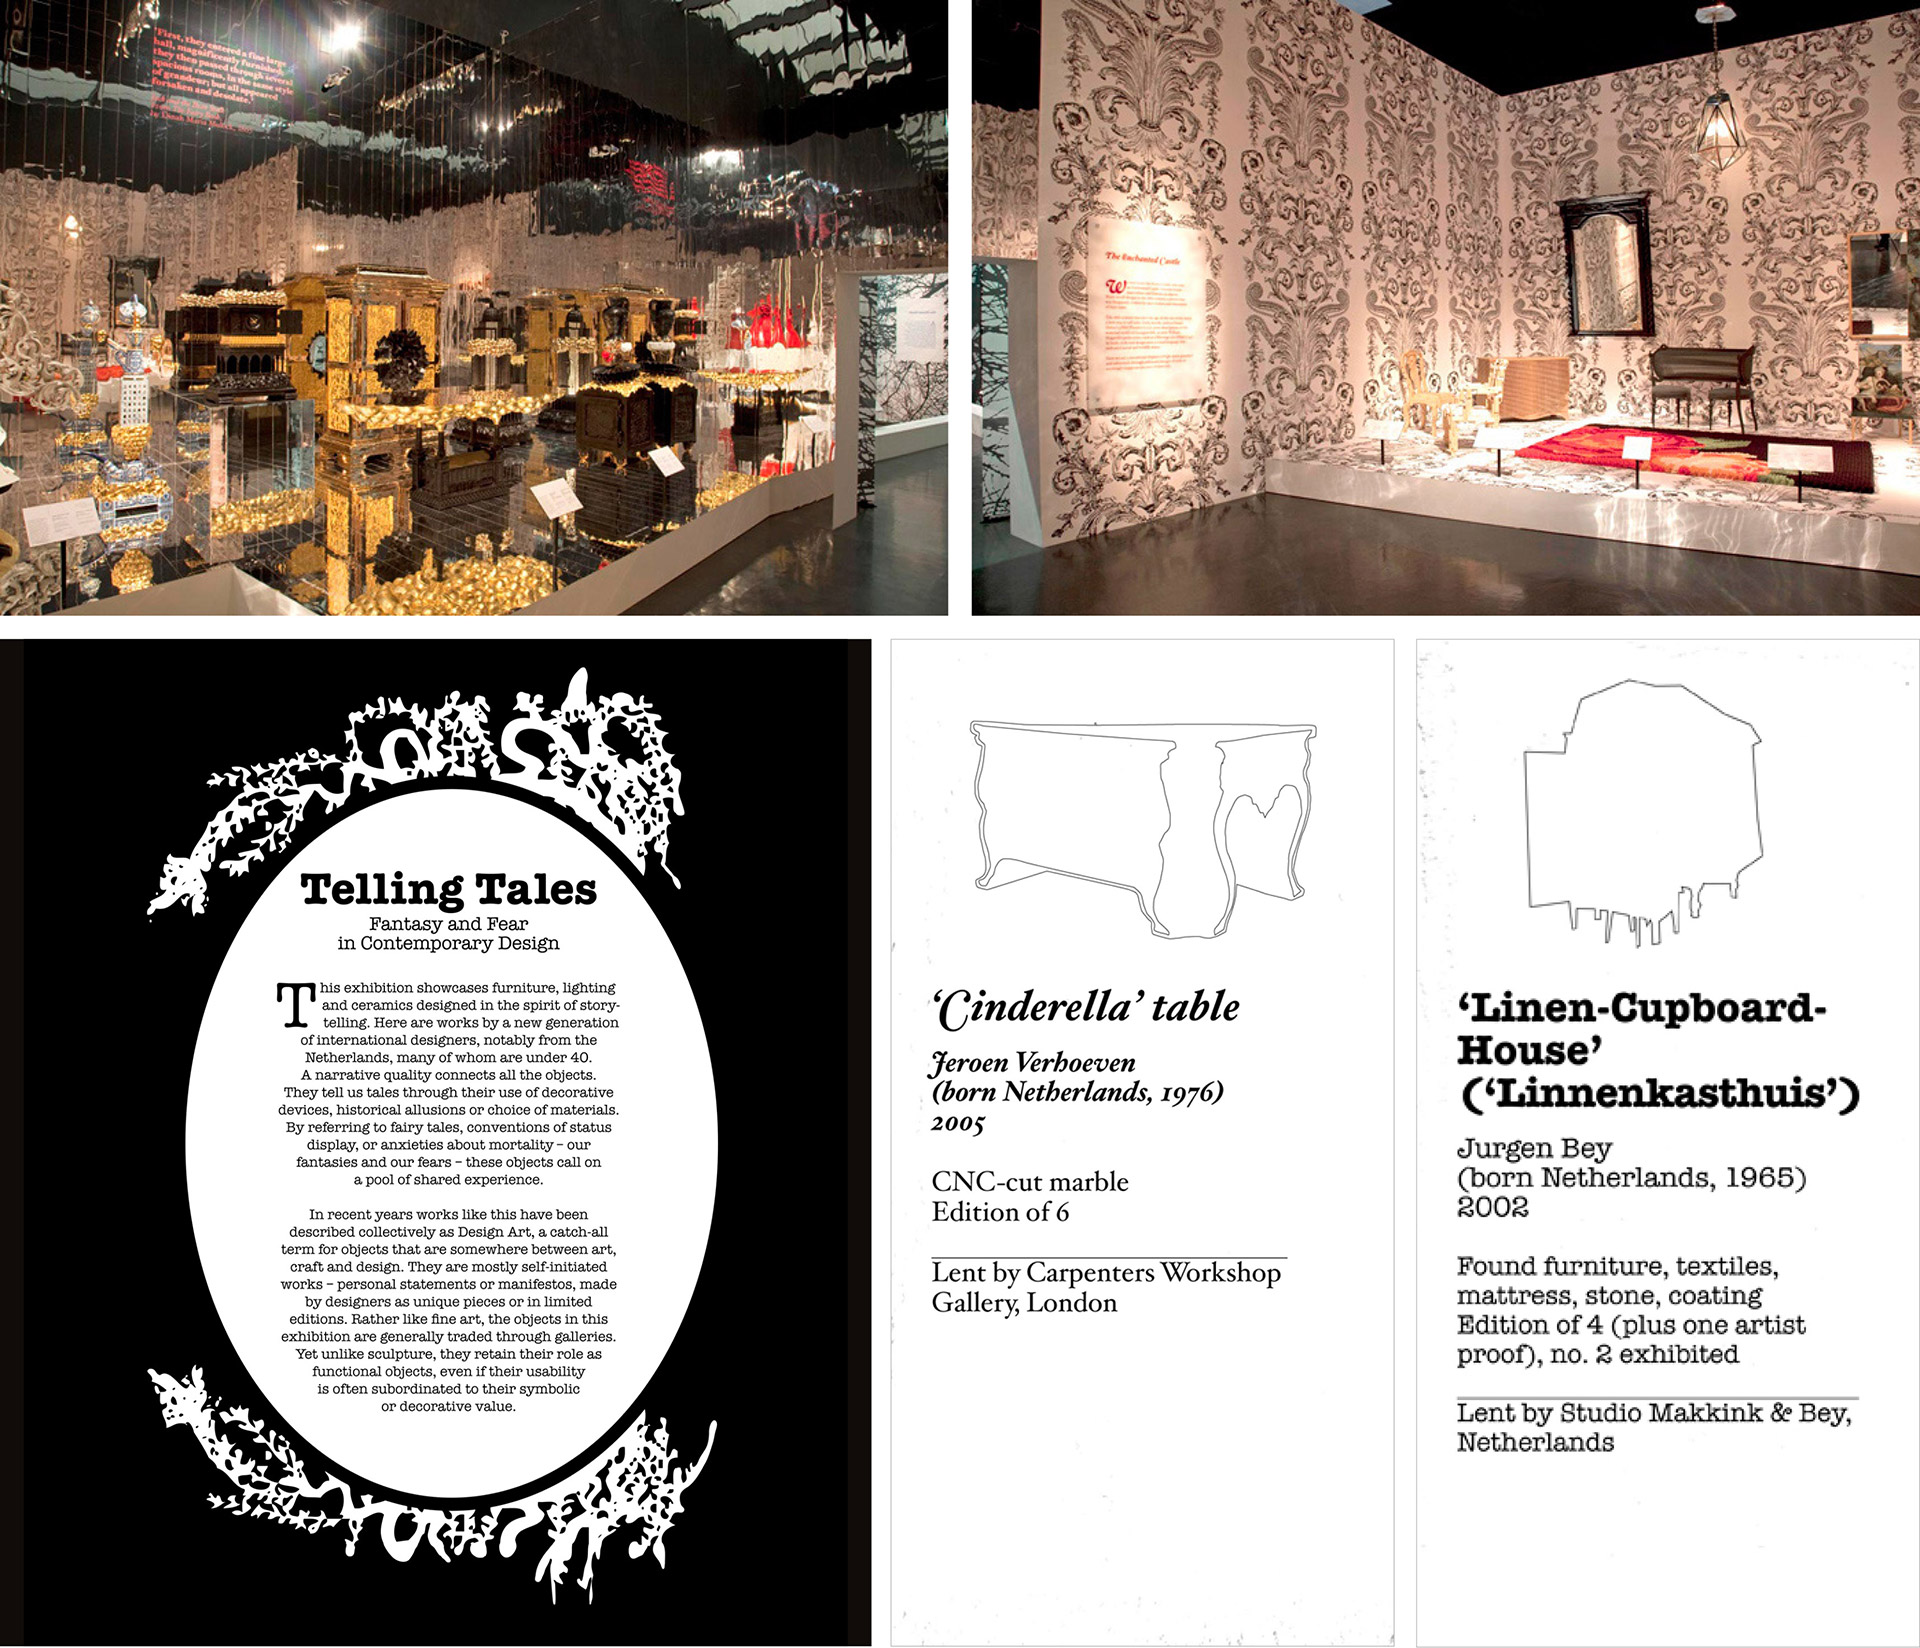 Telling Tales: Fantasy and Fear in Contemporary Design at V&A South Kensington designed by Irish Butcher